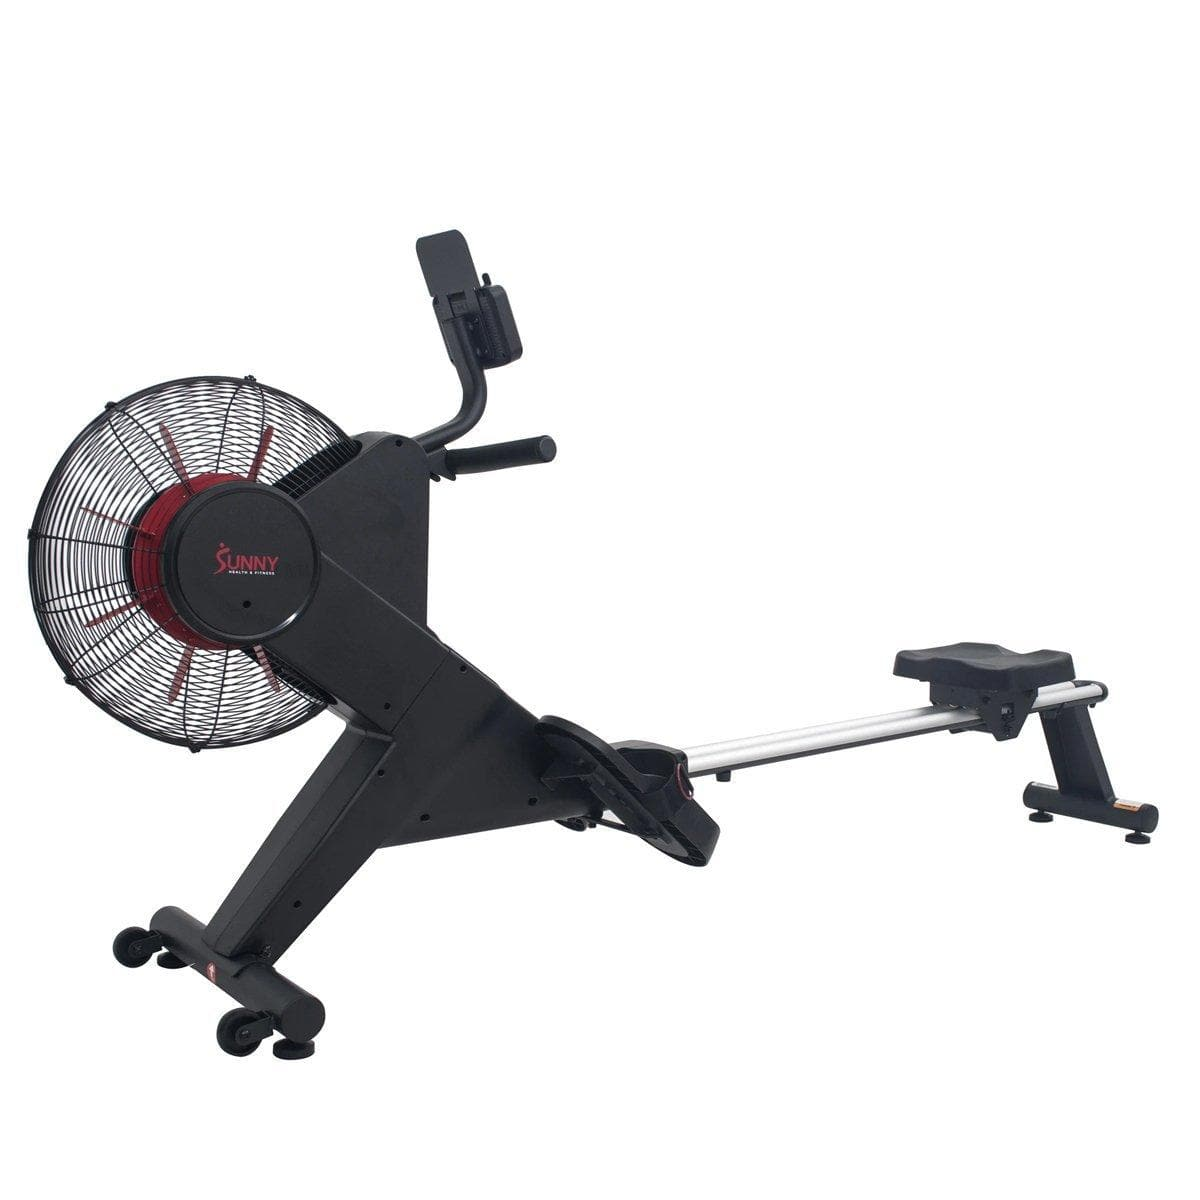 Carbon Premium Air Magnetic Rowing Machine Cardio Training Sunny Health and Fitness